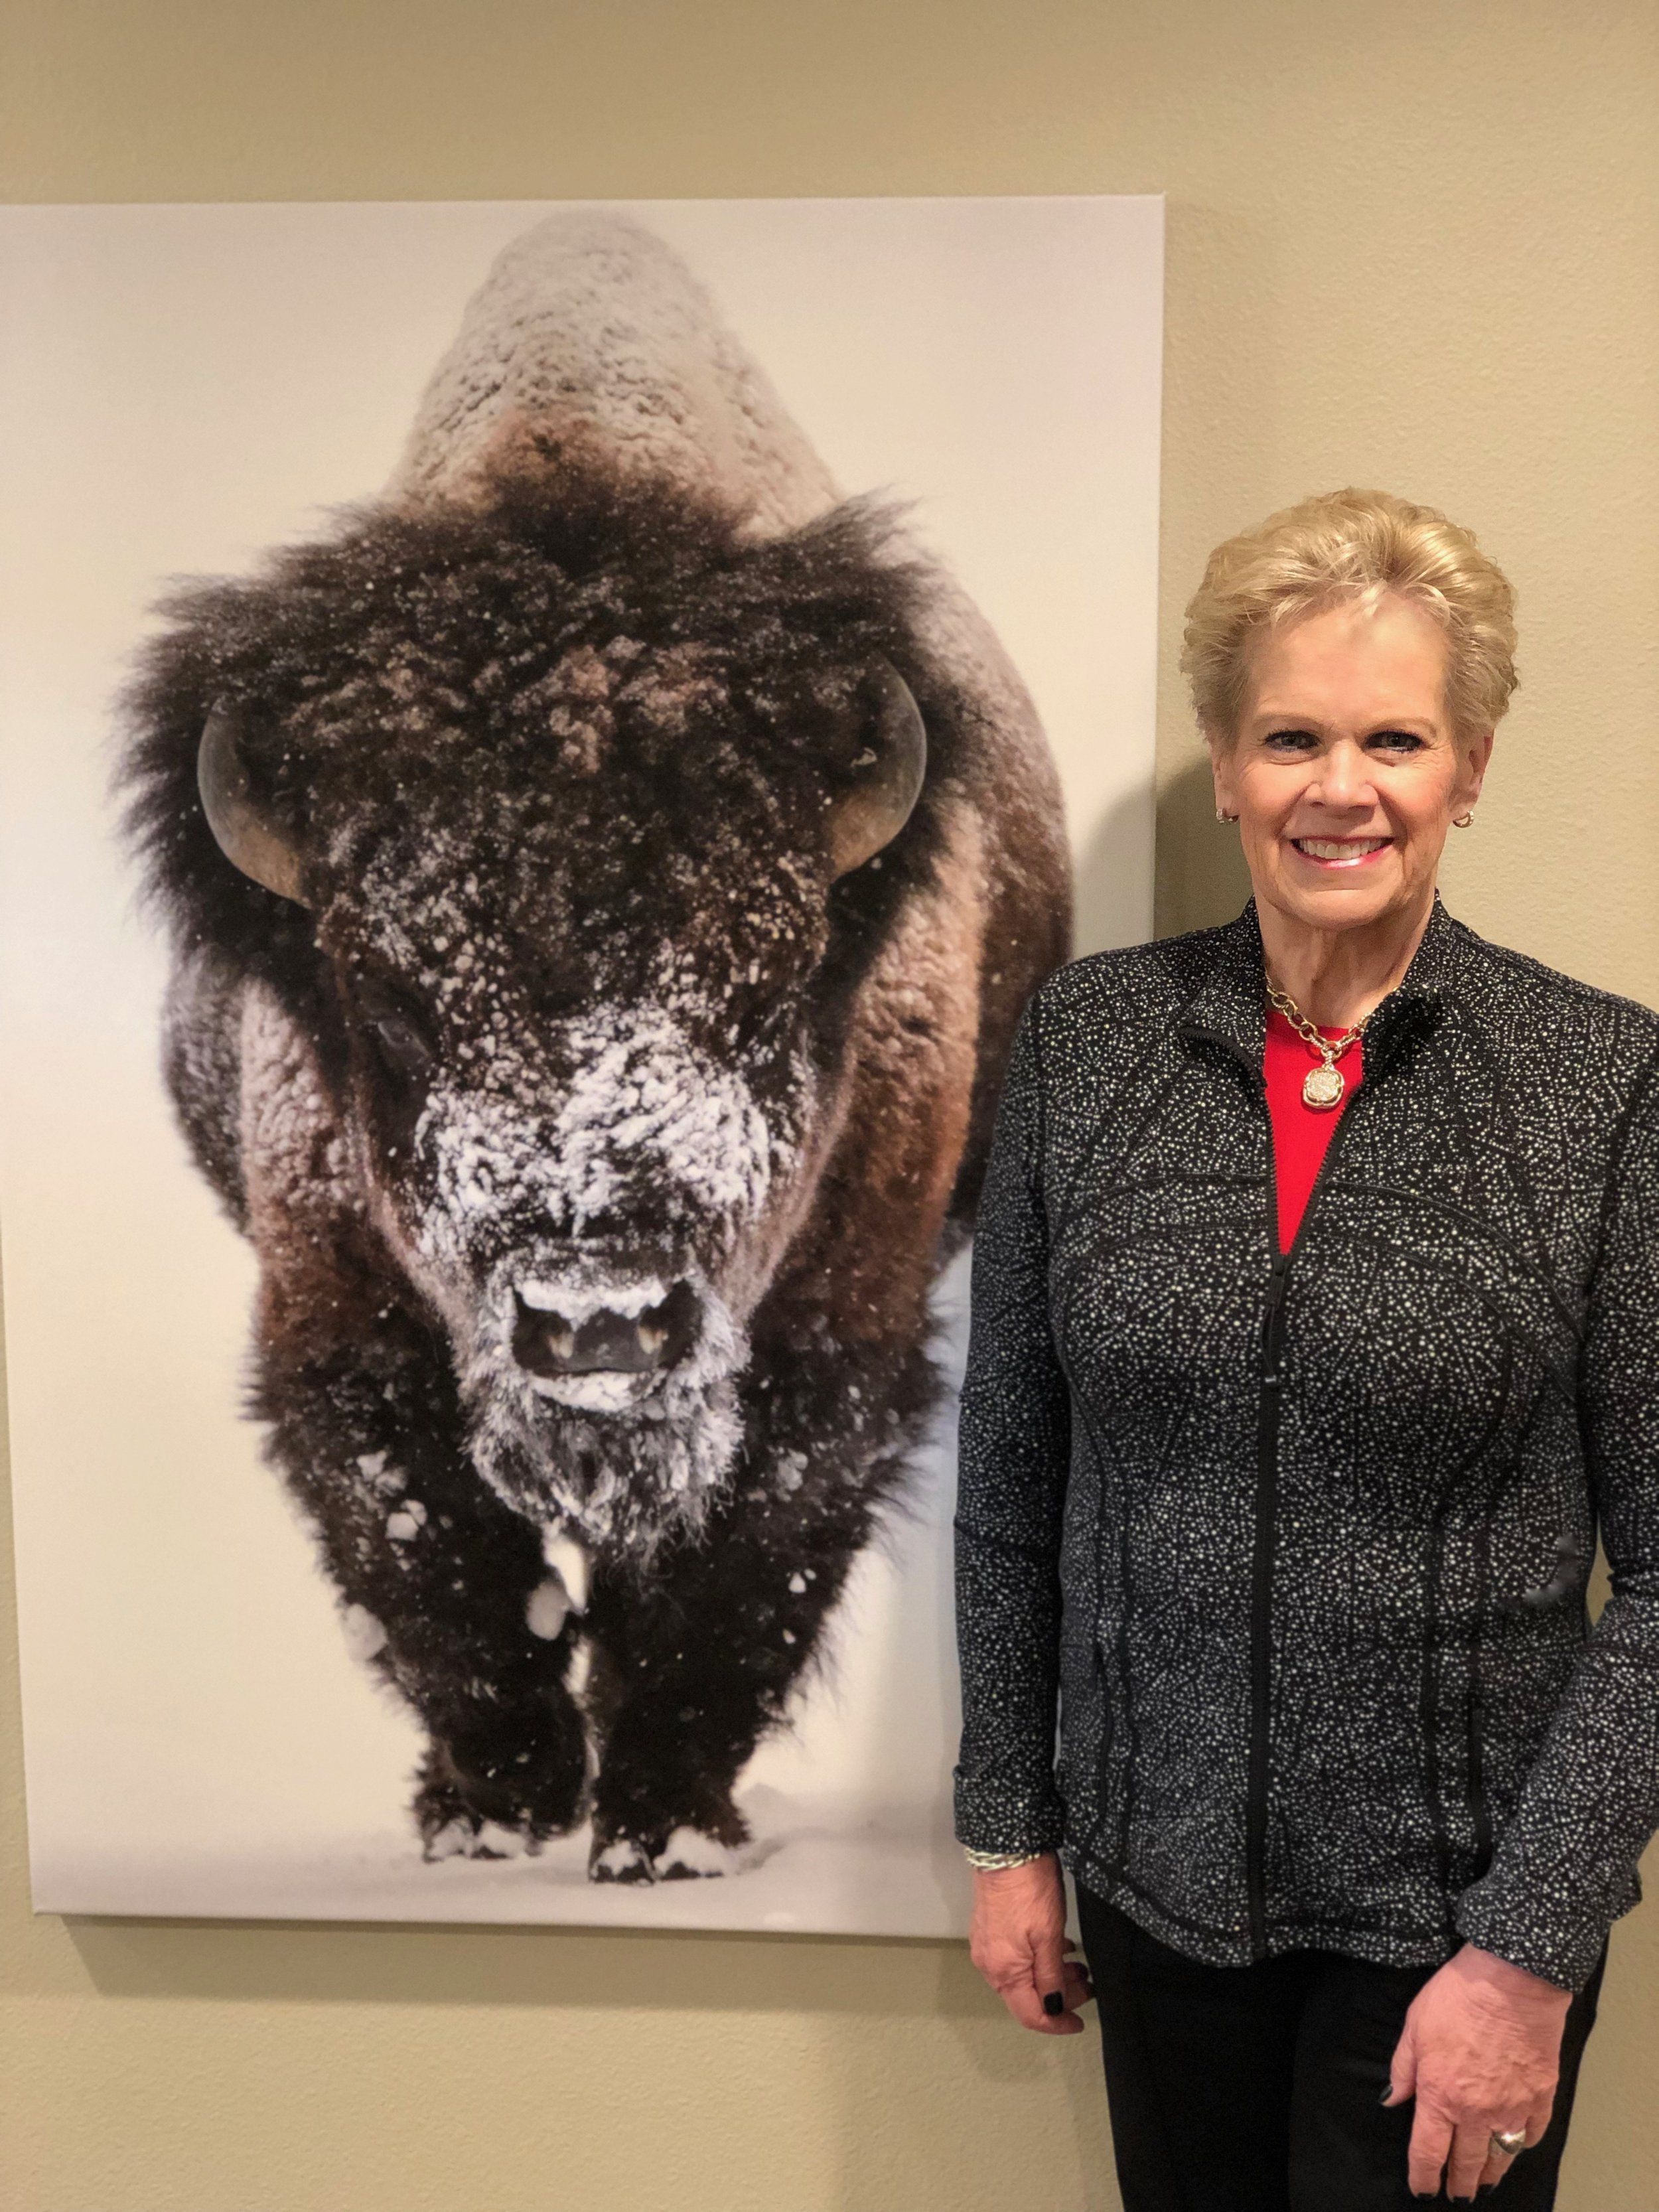 Our bison reminder in the office.